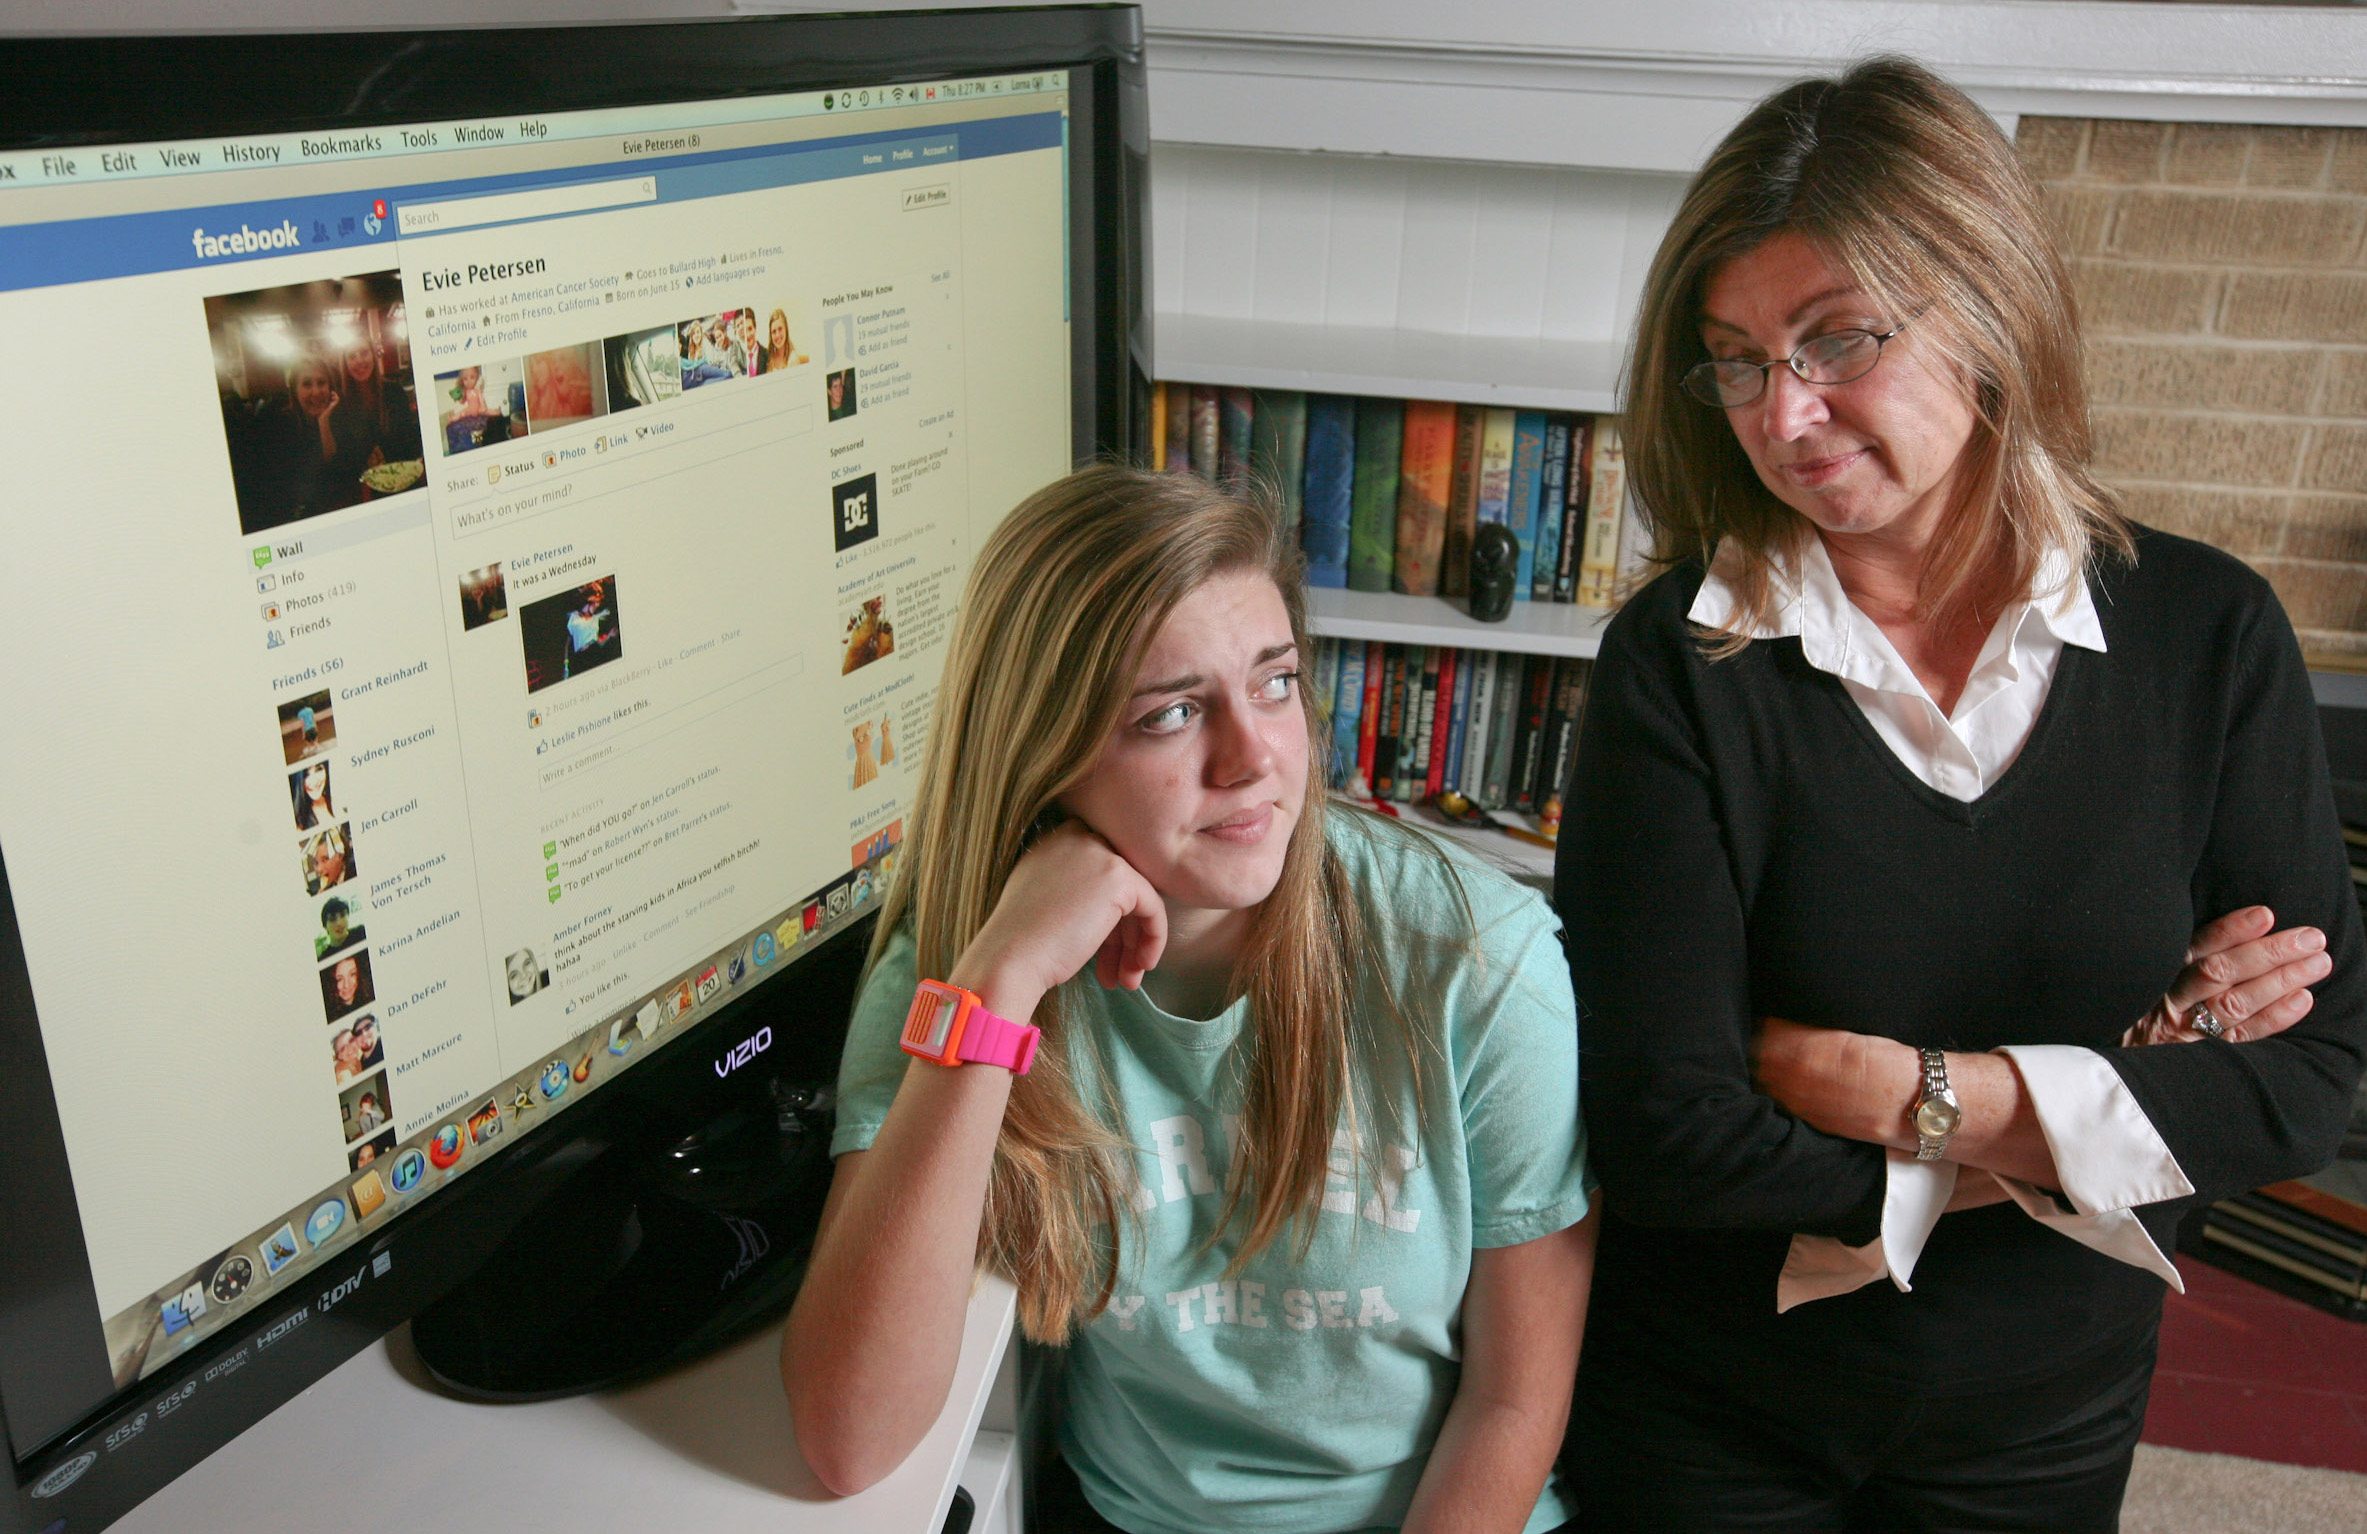 Evie Petersen, left, likes having friends on Facebook, but doesn't especially want her mother, Gretta Petersen, right, to be one of them. Evie has friended, unfriended, refriended and then unfriended her mom. (Craig Kohlruss/Fresno Bee/MCT)